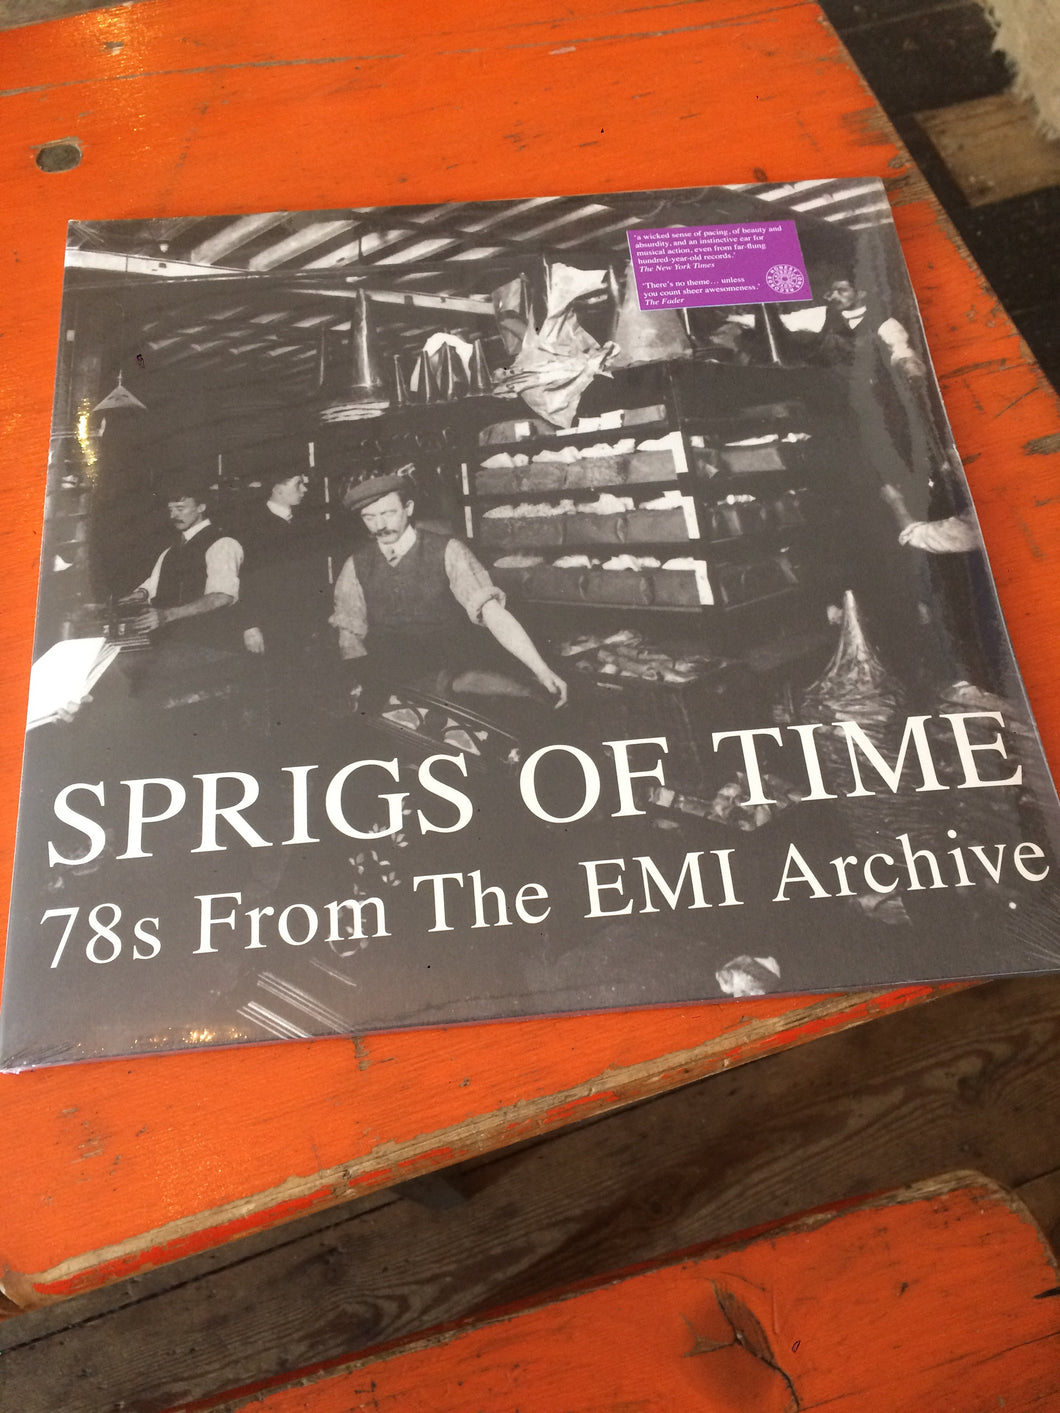 Sprigs Of Time - 78s From The EMI Archive